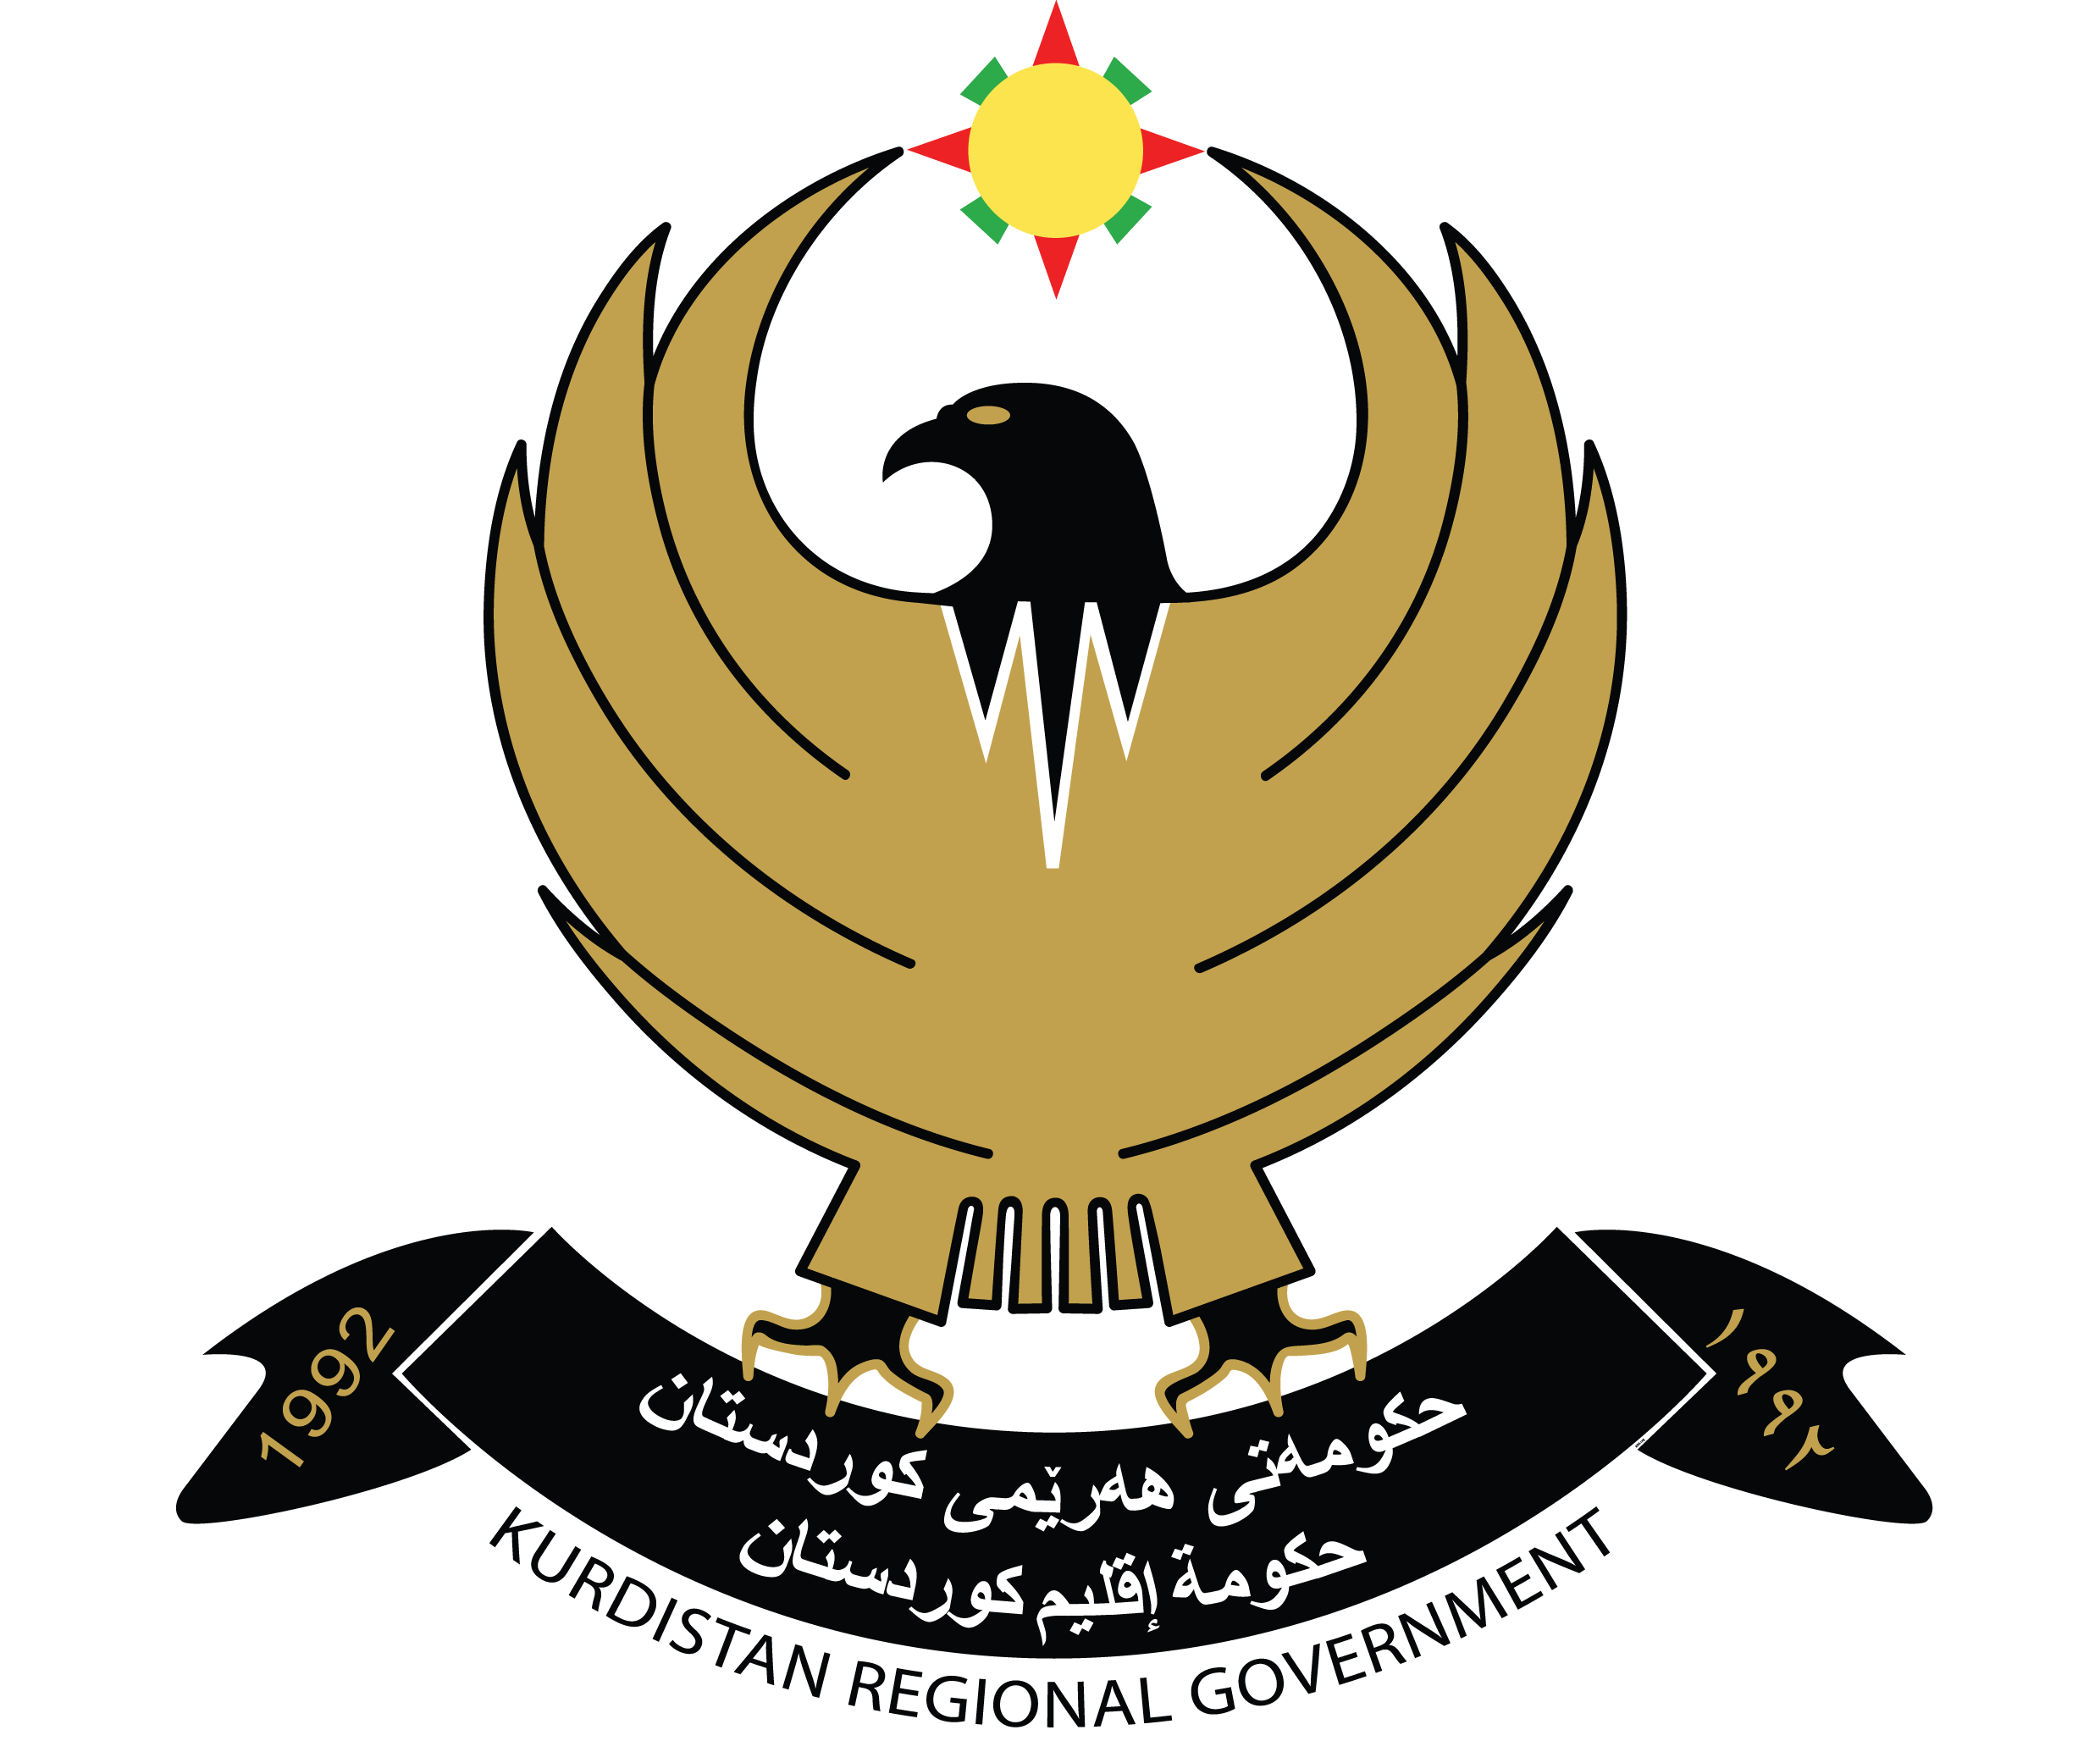 Kurdistan Regional Government - Iraq